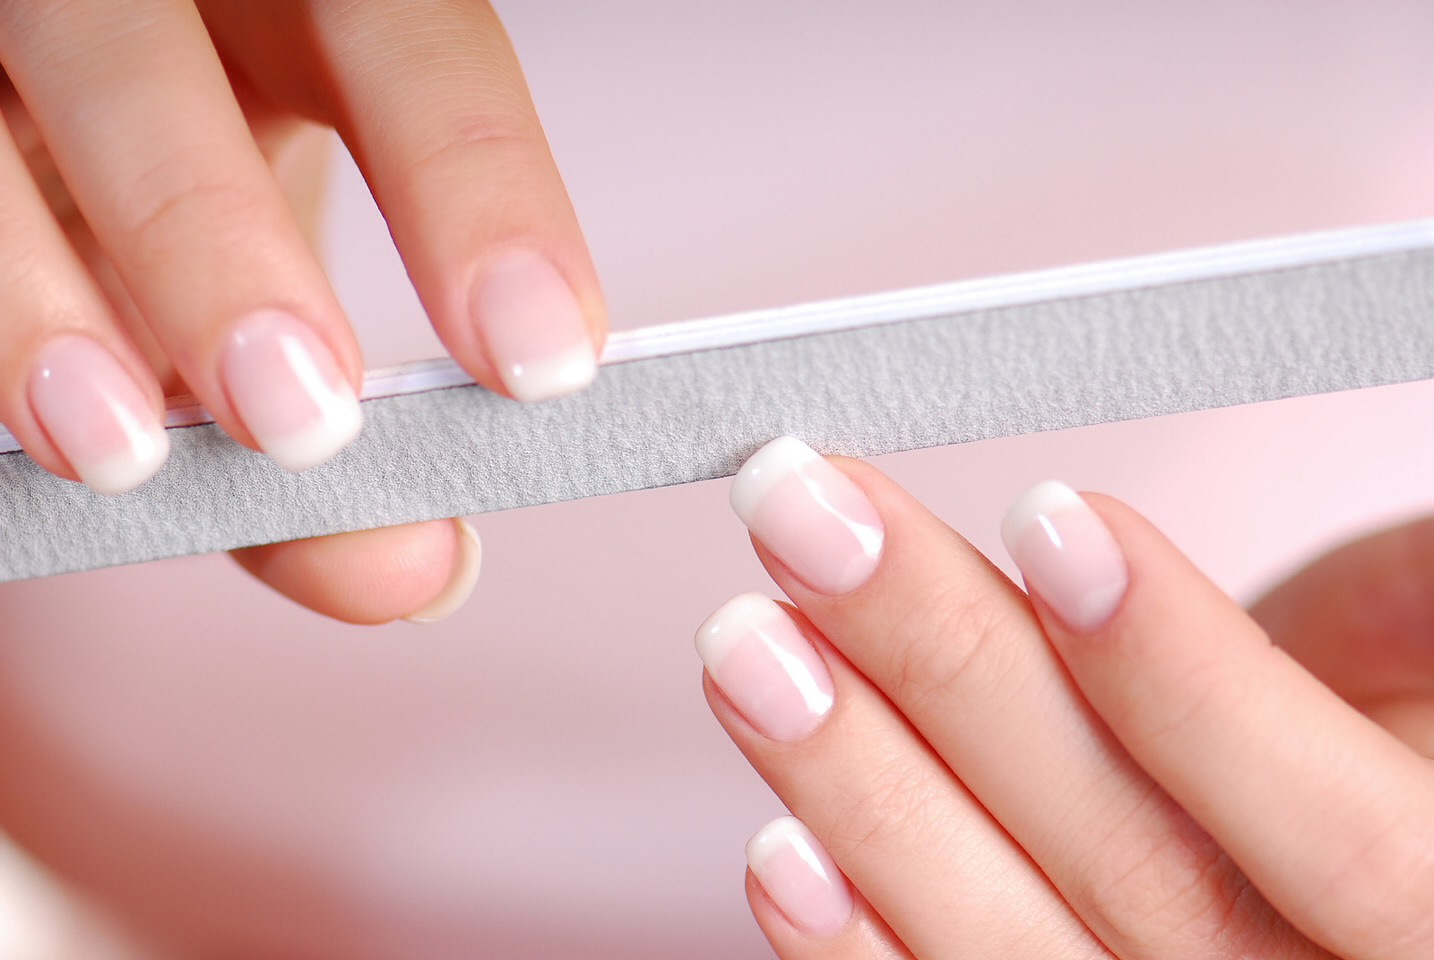 Allow the glue to dry, then gently file the top of the paper so that it is smooth and flush with the nail. Finish with a layer of base coat, two coats of nail polish, and a topcoat.